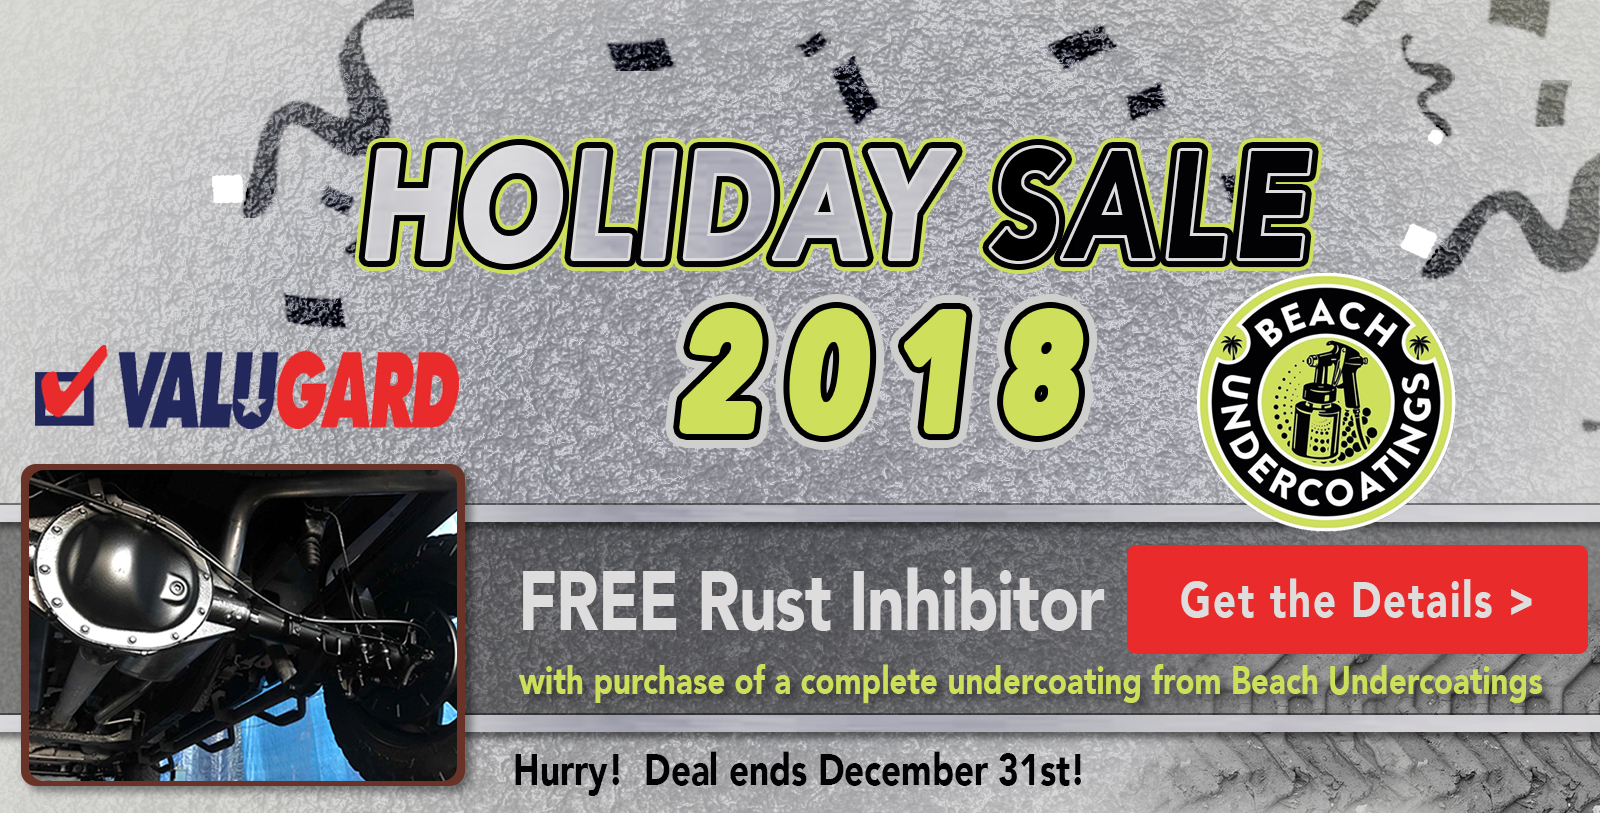 Holiday 2018 Deal: FREE Rust Inhibitor with purchase of a complete undercoating from Beach Undercoatings